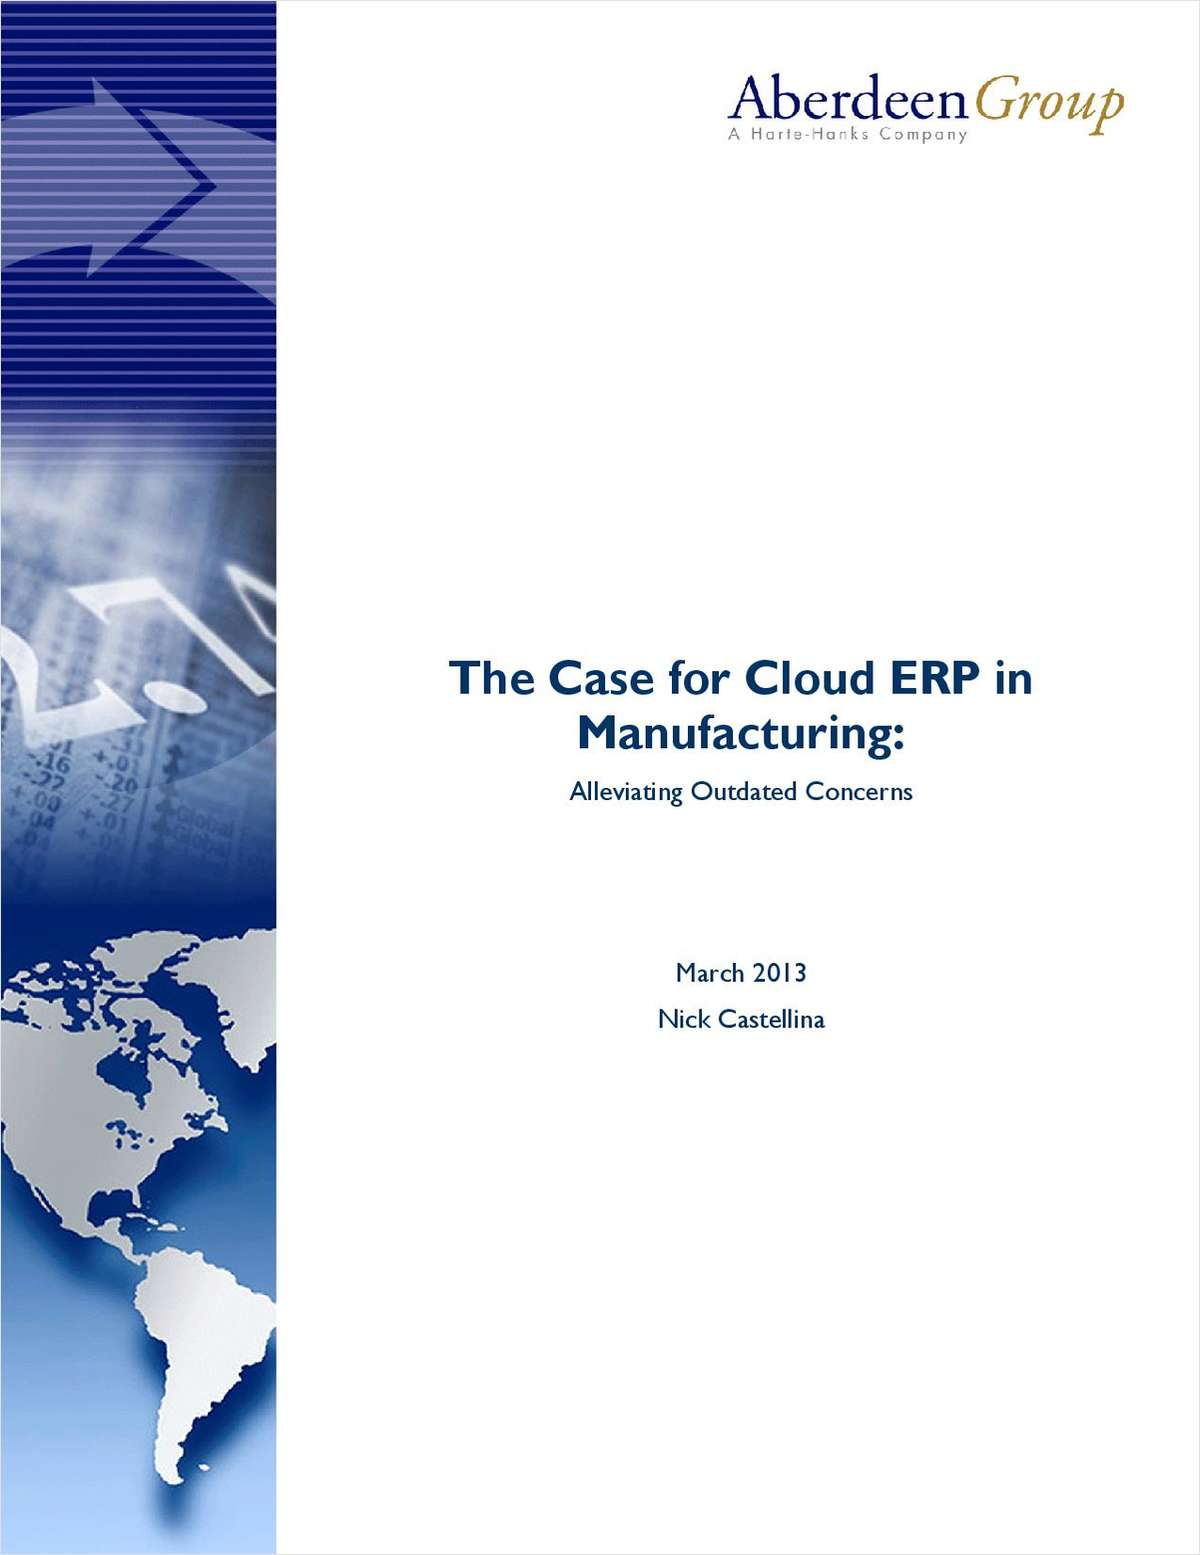 The Case for Cloud ERP in Manufacturing